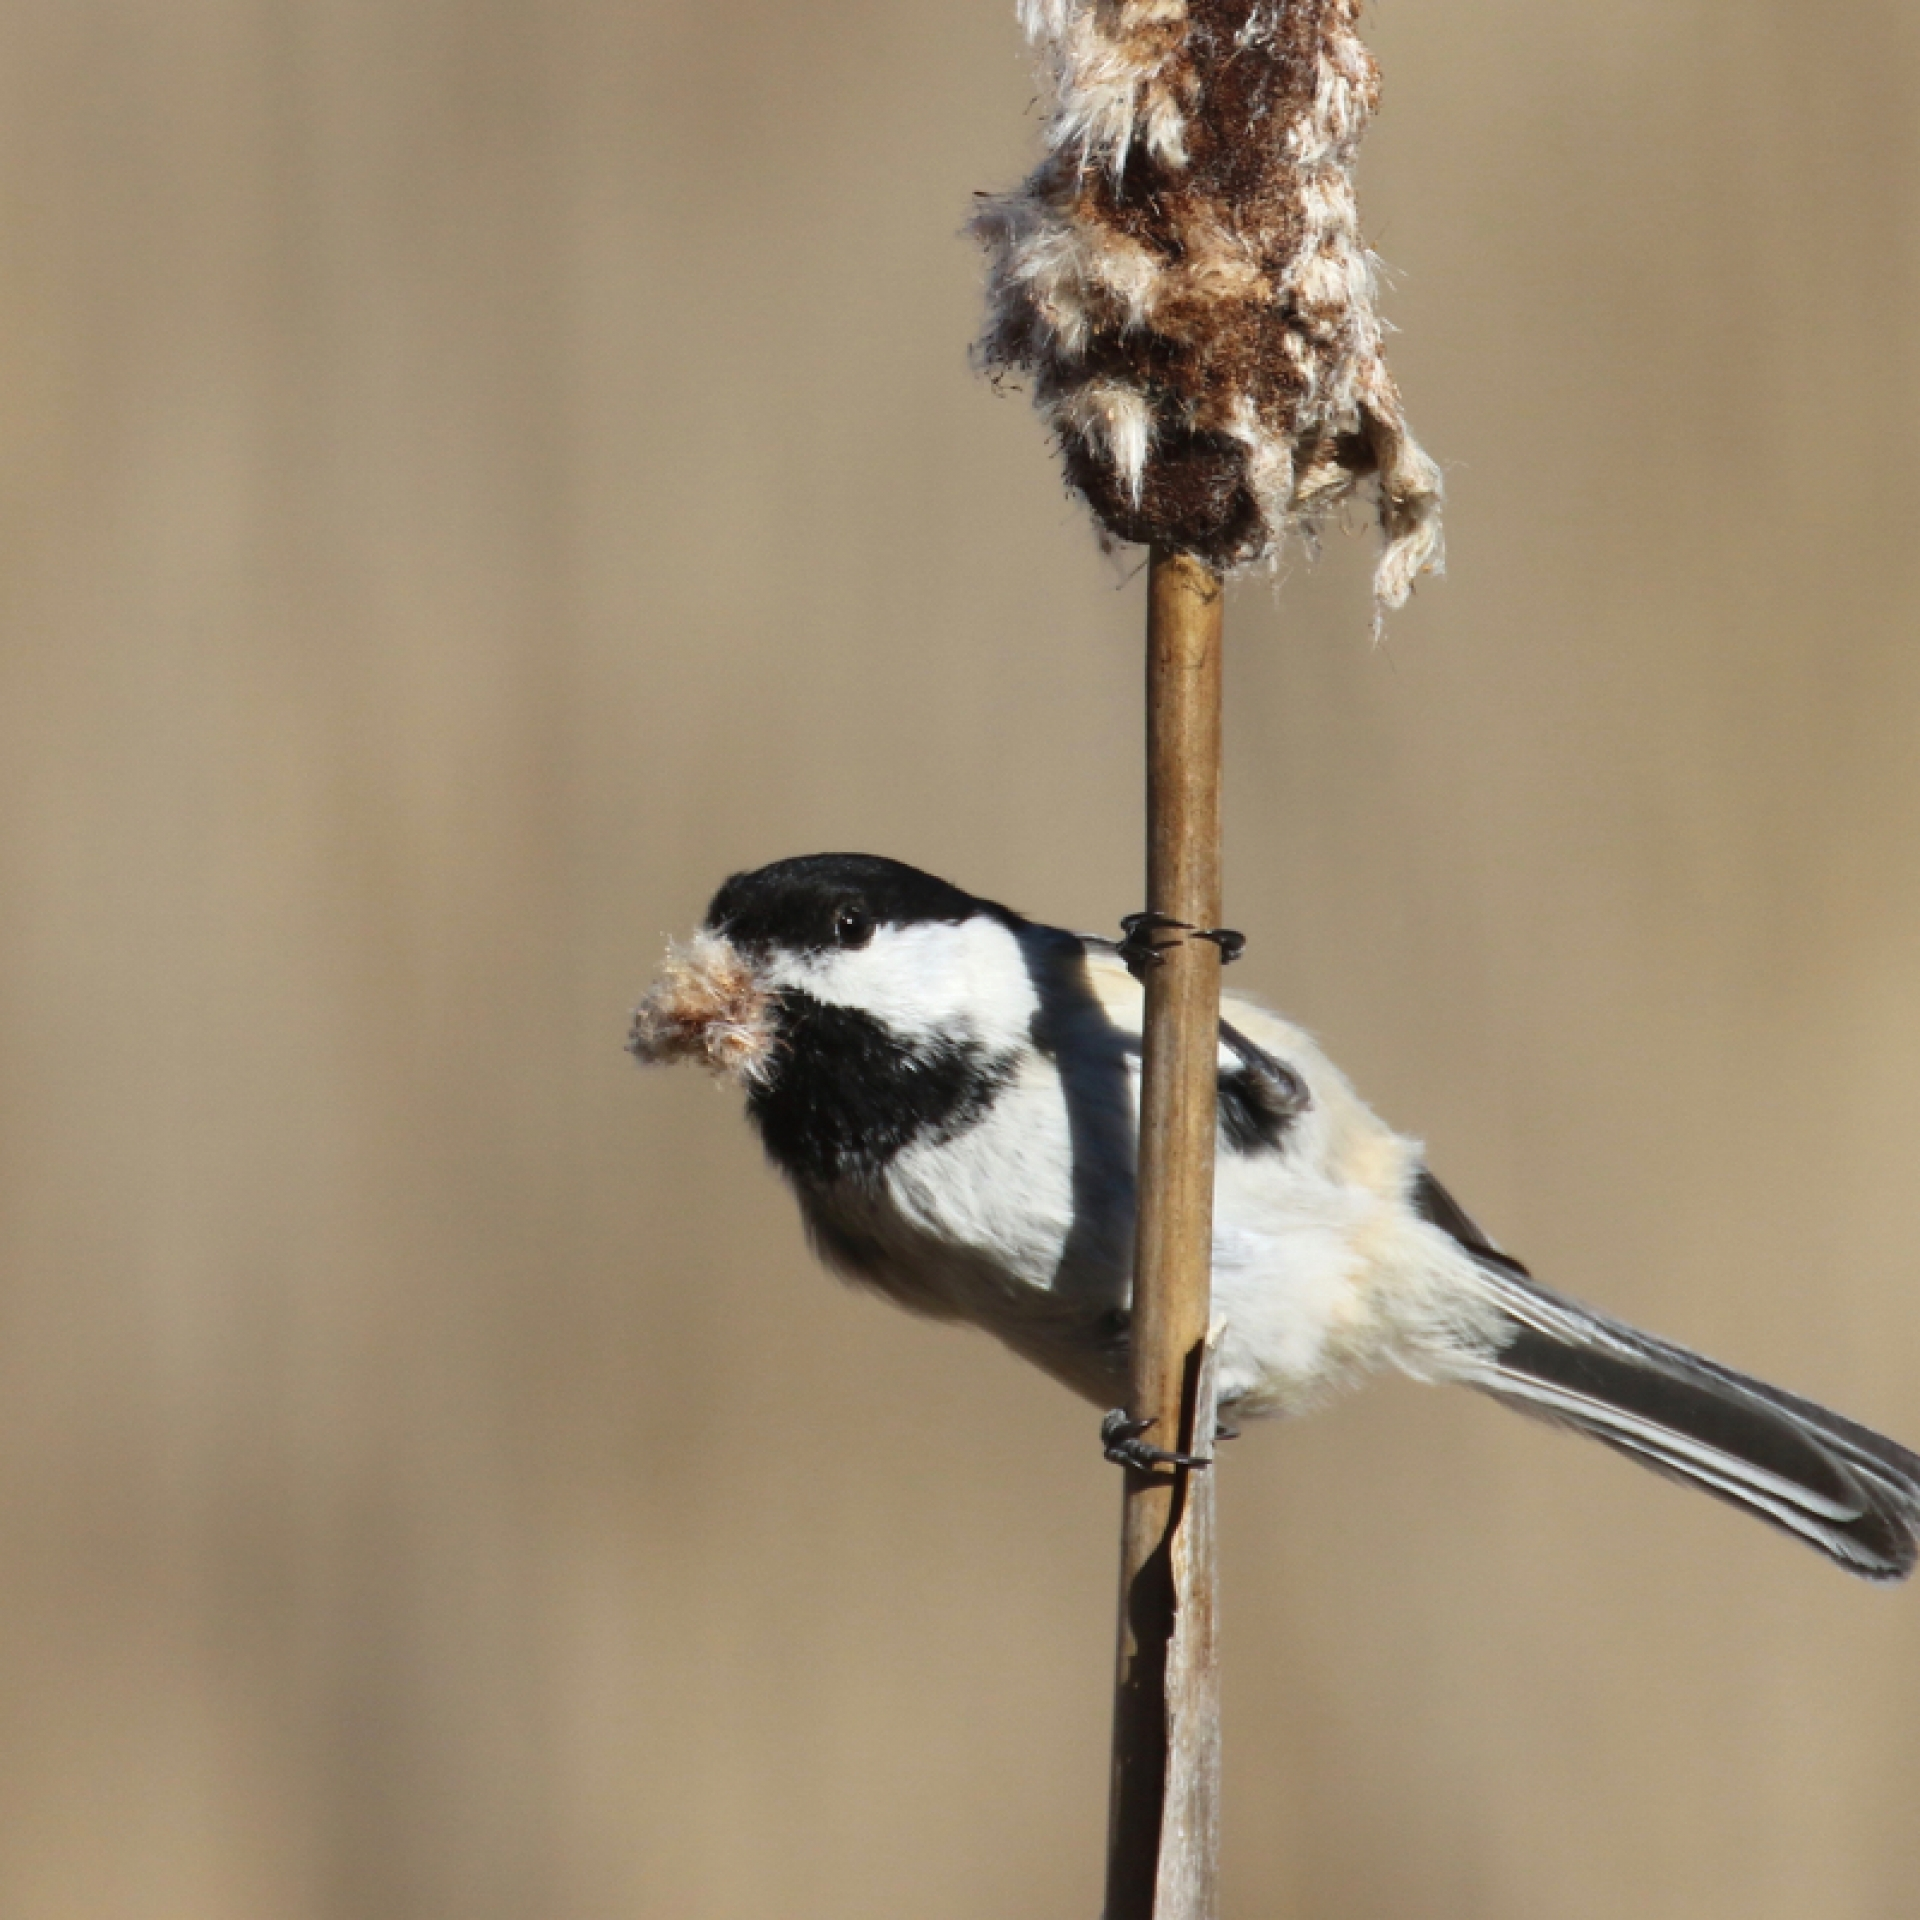 Black-capped chickadee on catttail.